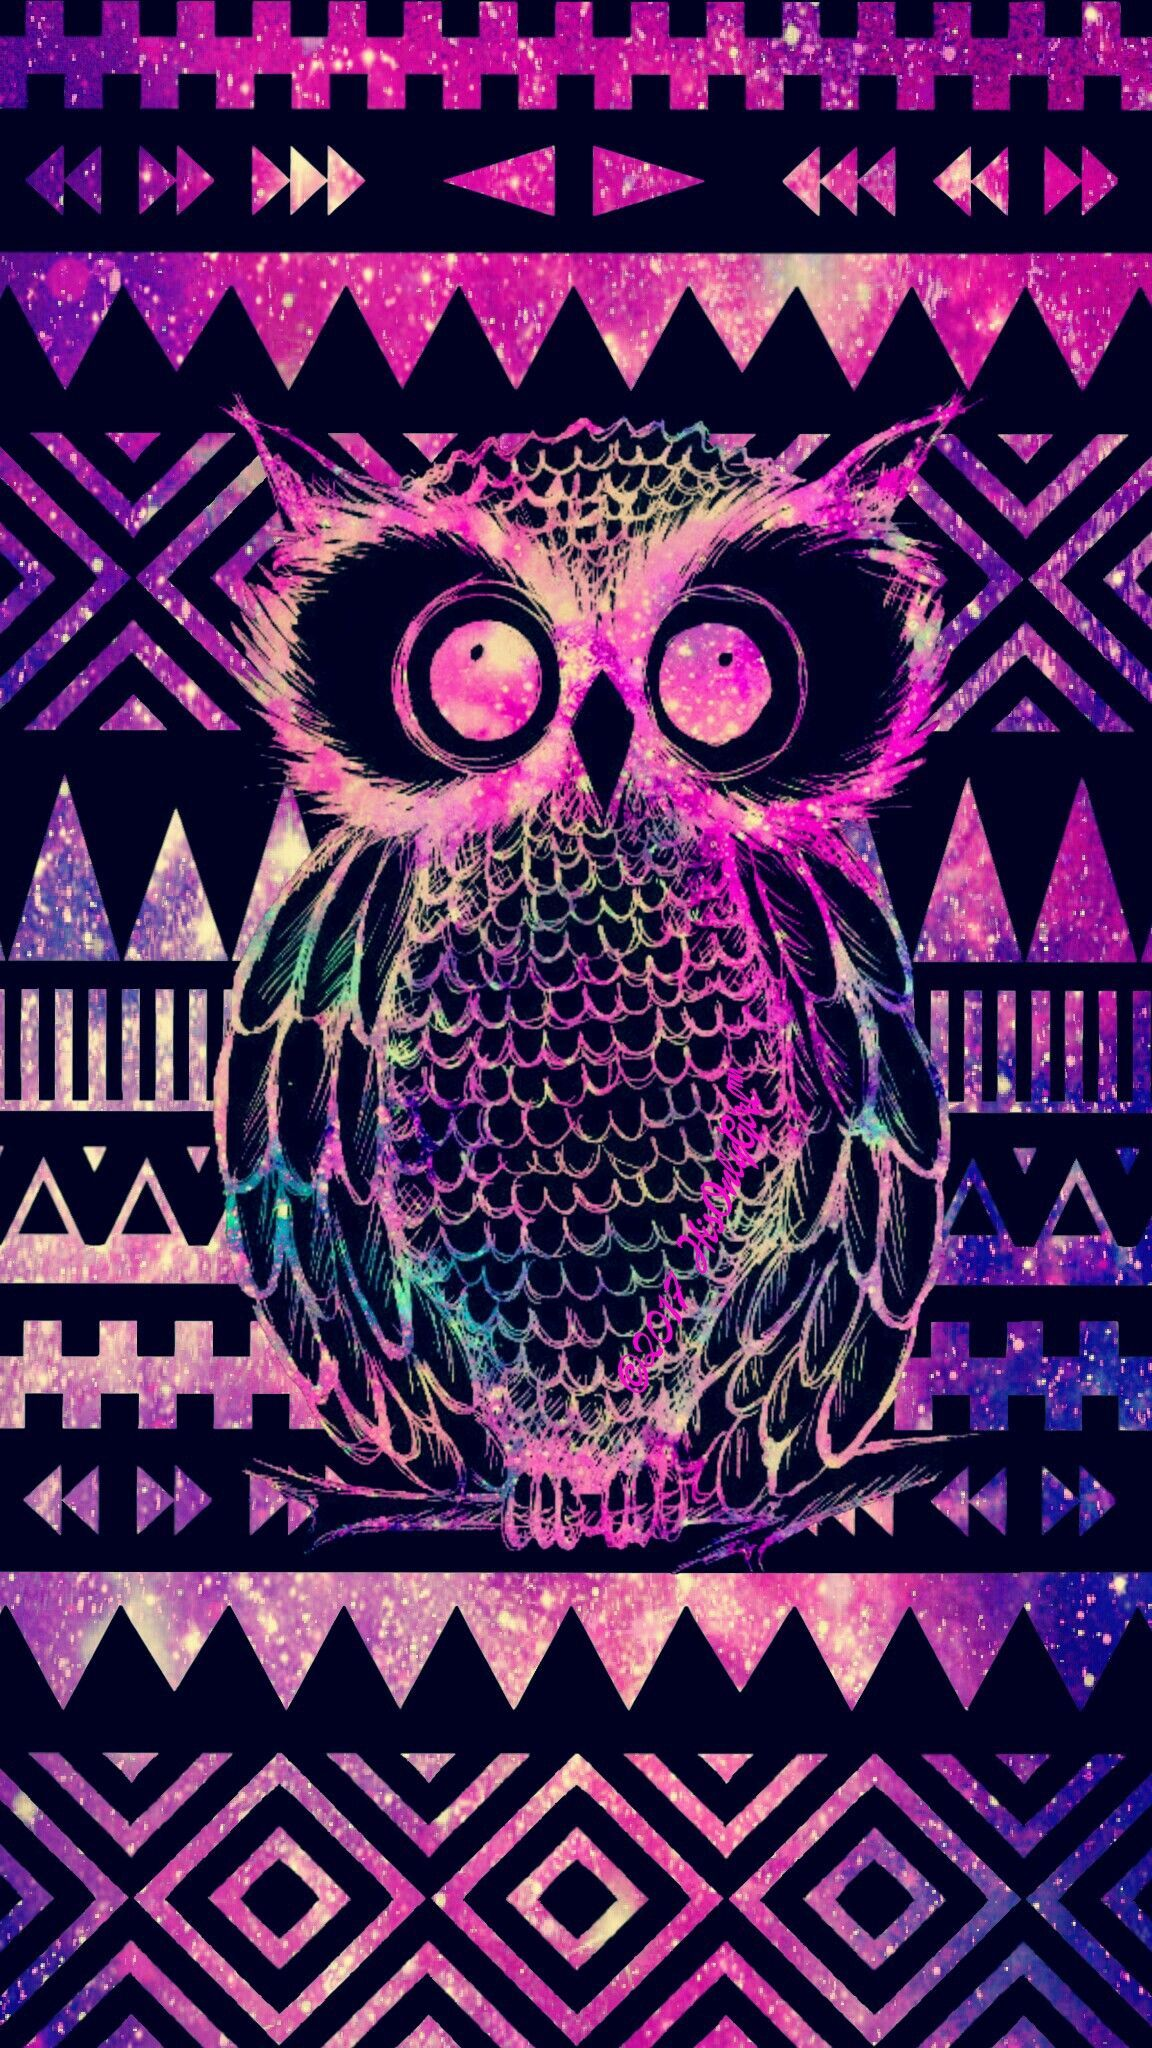 Tribal Owl Iphone Wallpapers Top Free Tribal Owl Iphone